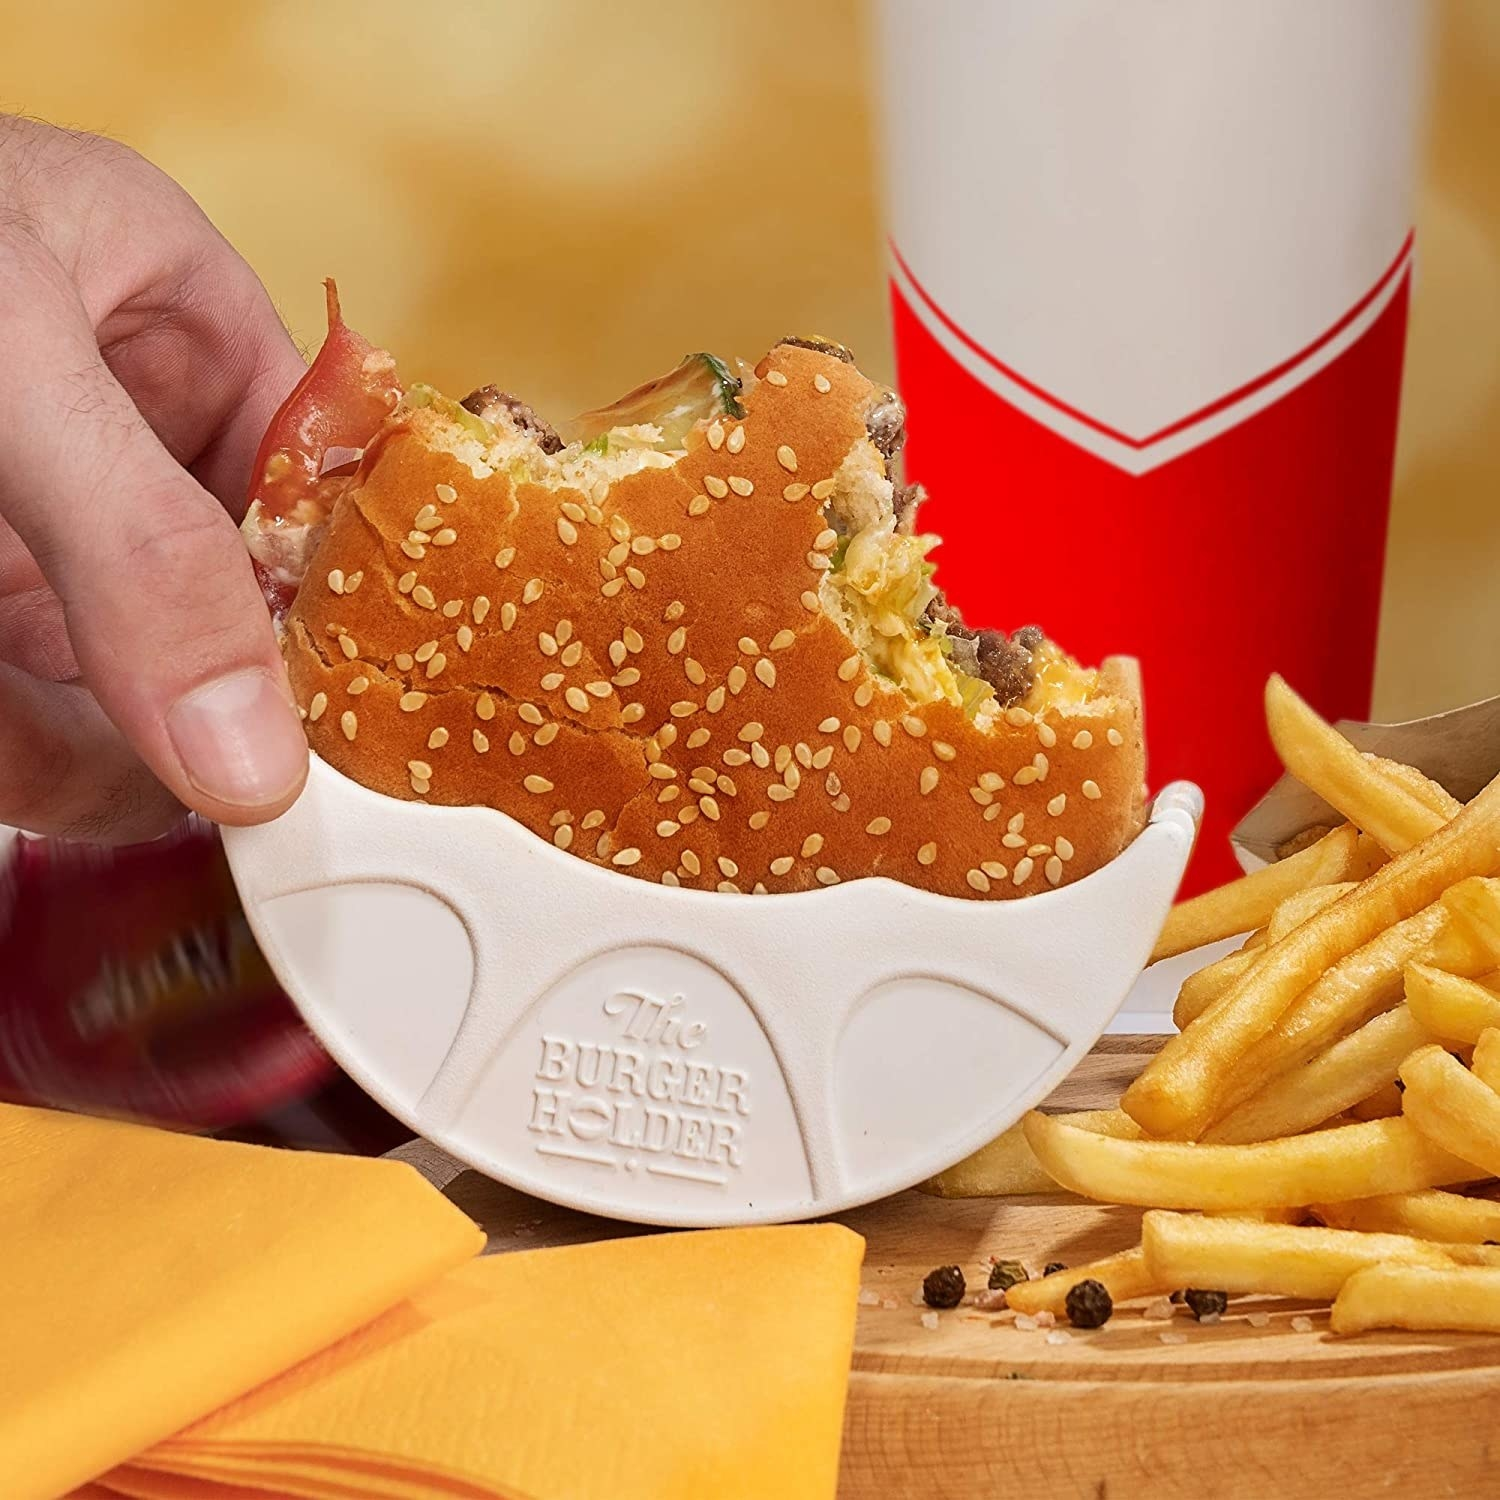 A person holding a burger in the burger holder